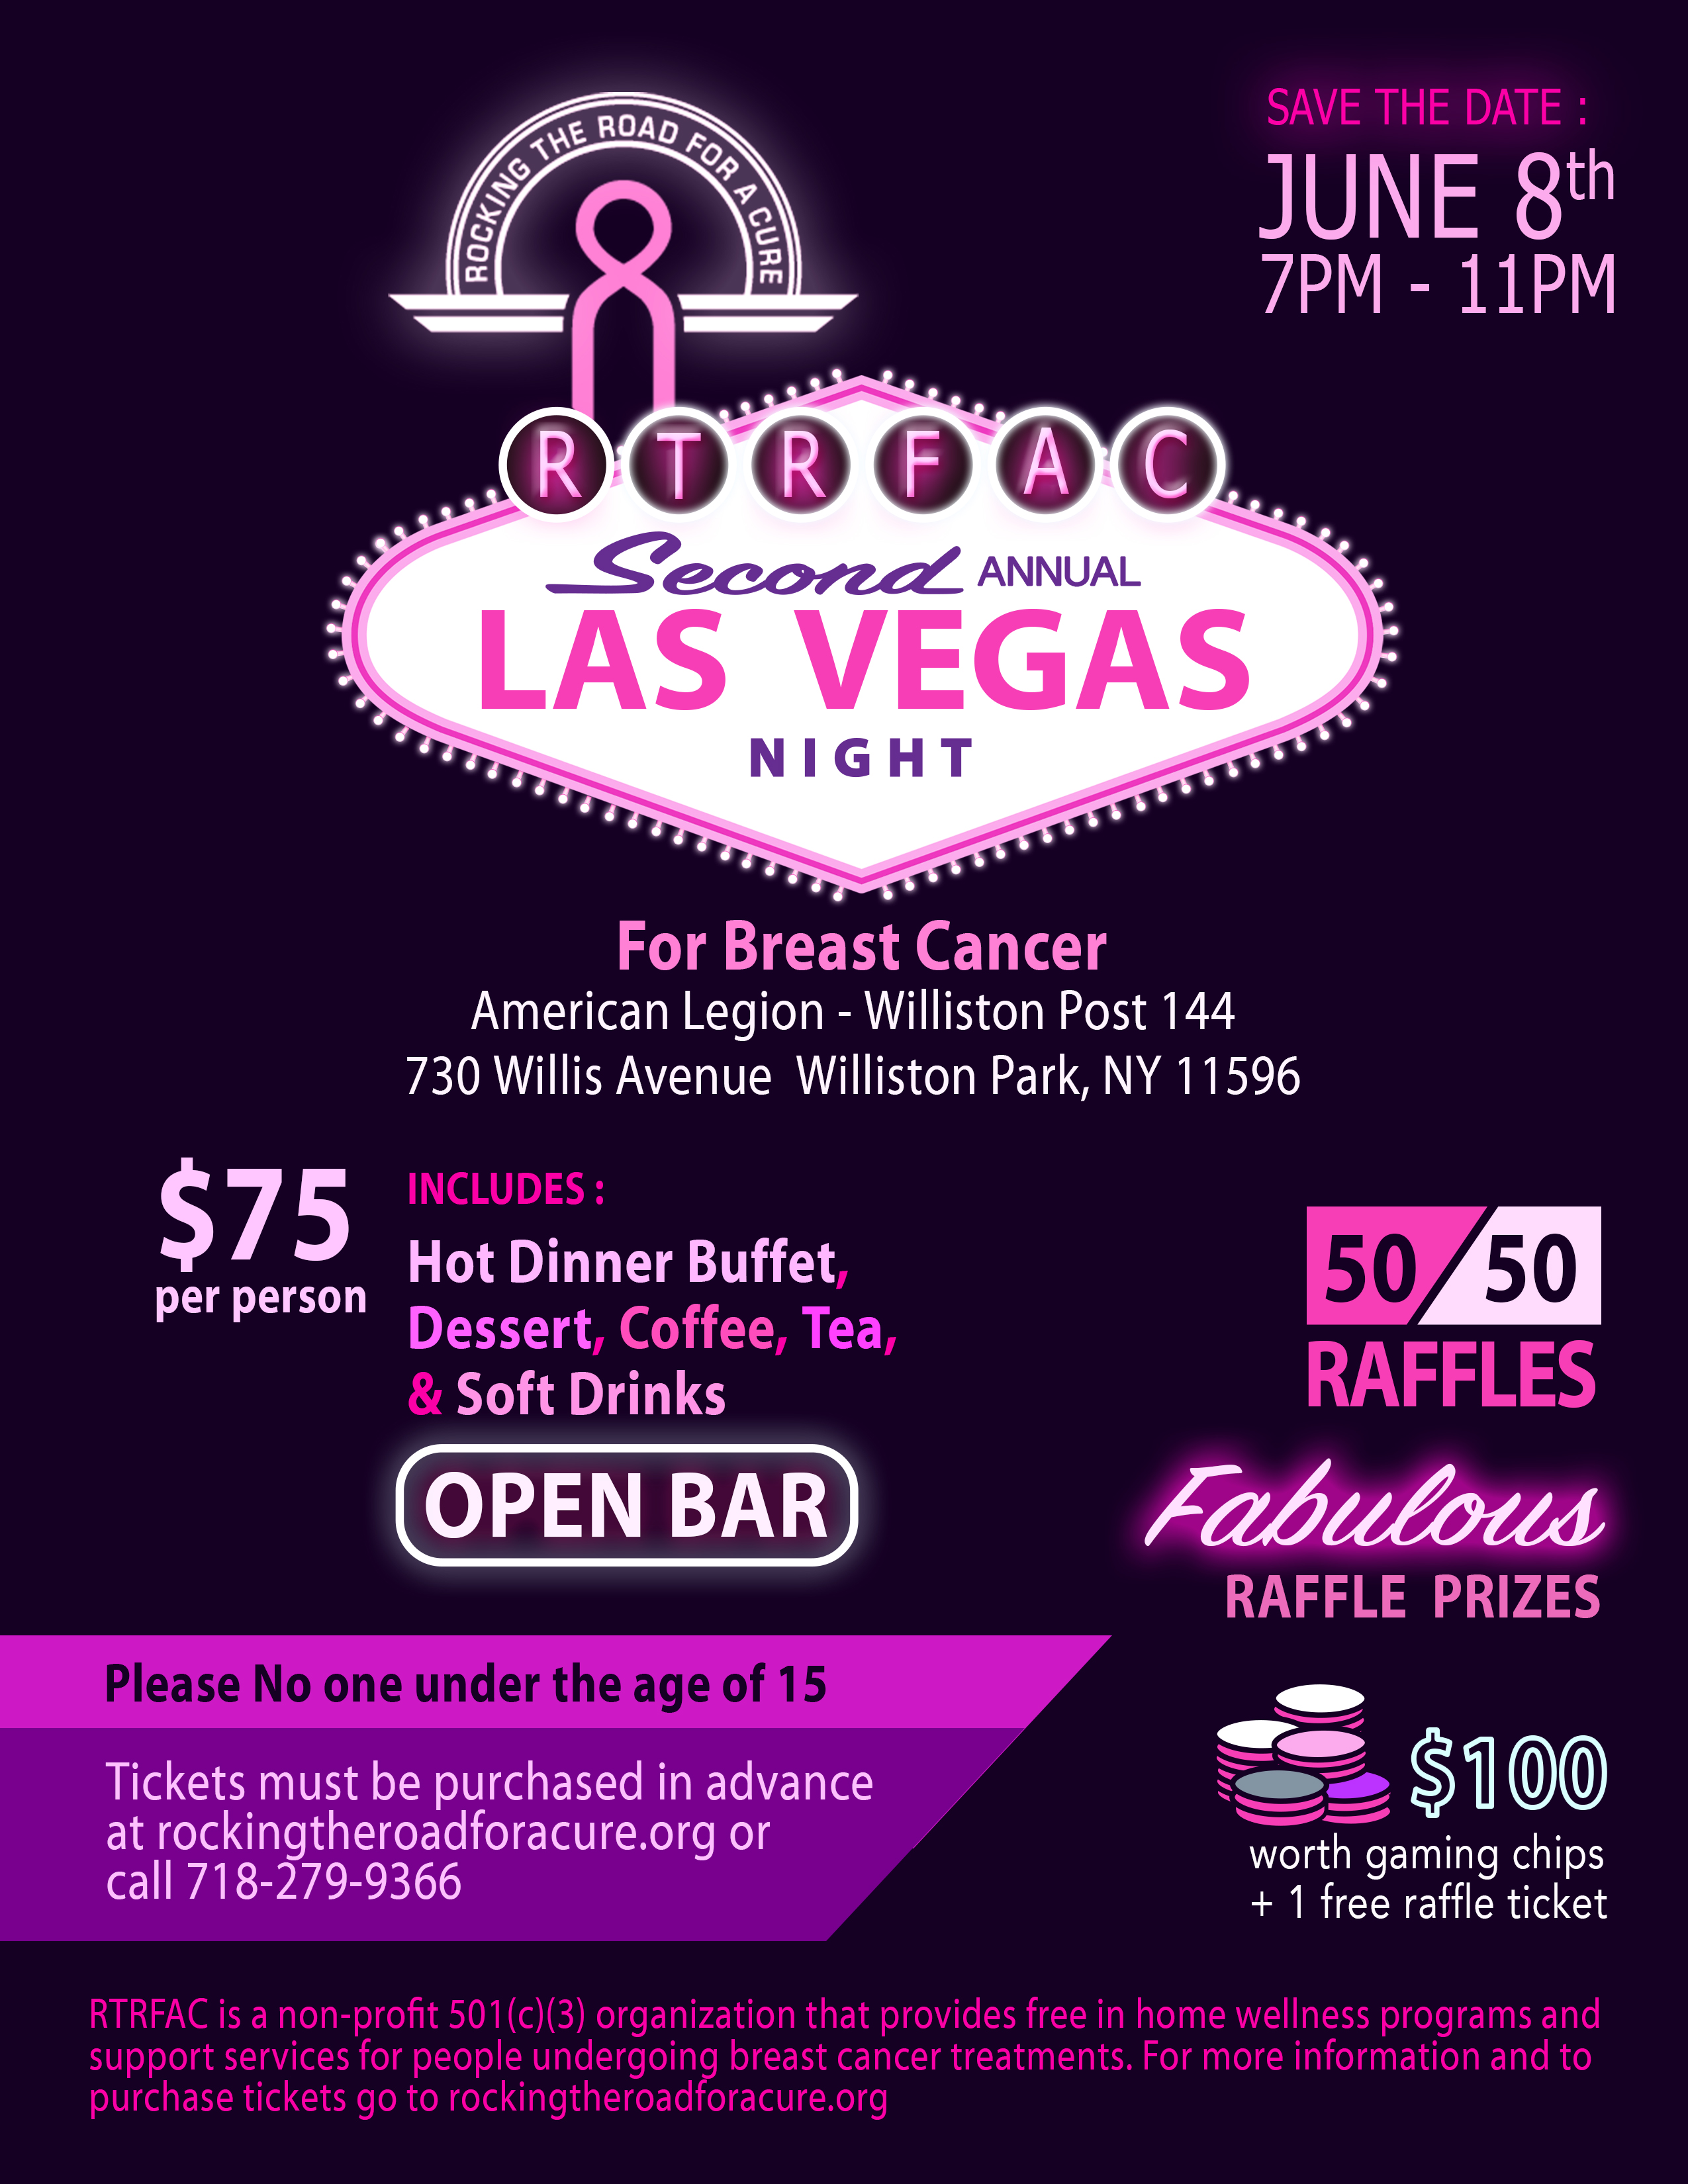 Las Vegas Night for Breast Cancer - 8 June 2018 - Long Island